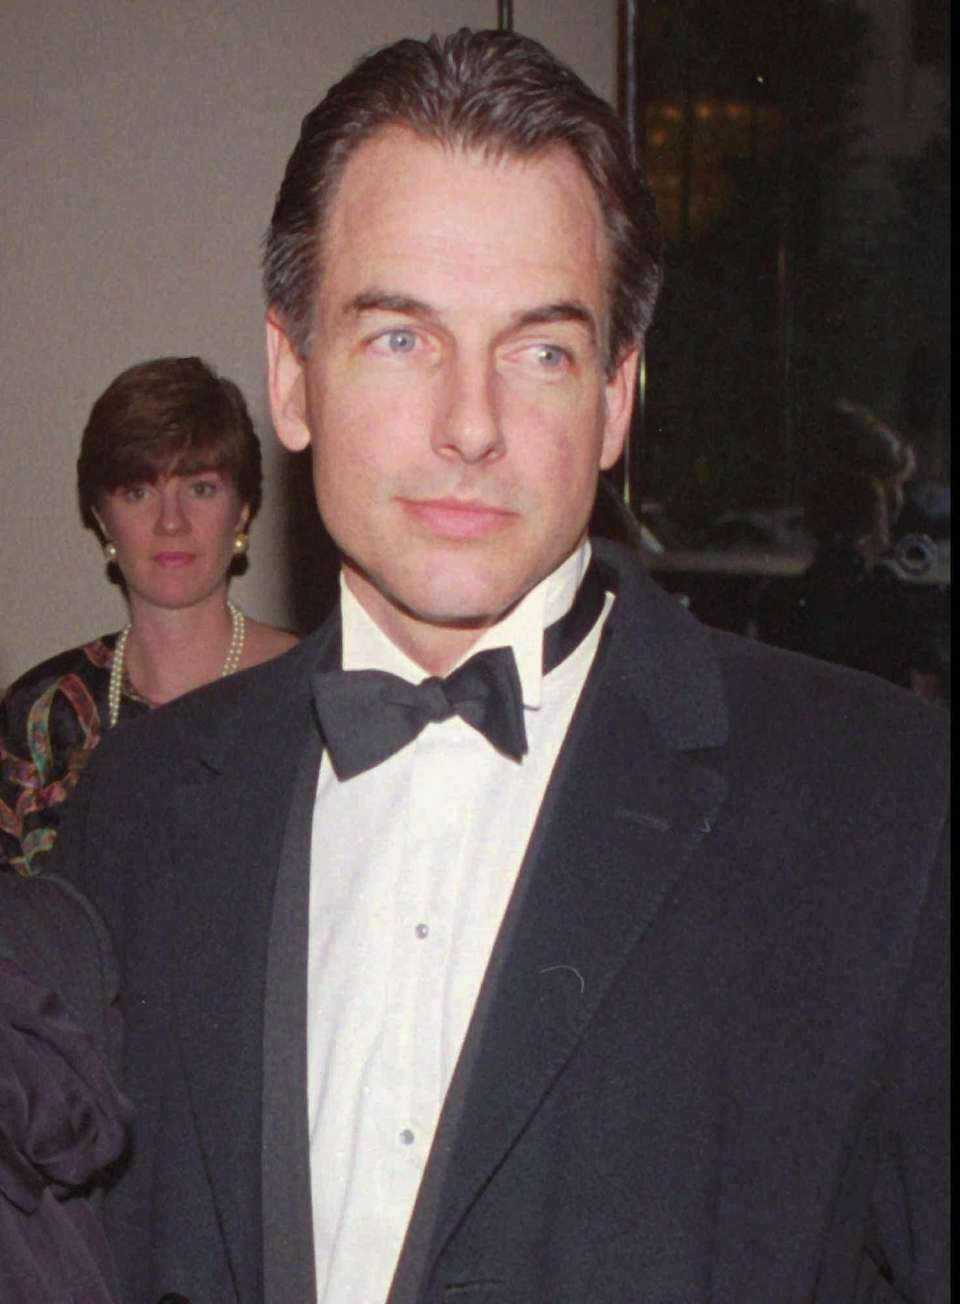 Before NCIS, Mark Harmon was People's sexiest man